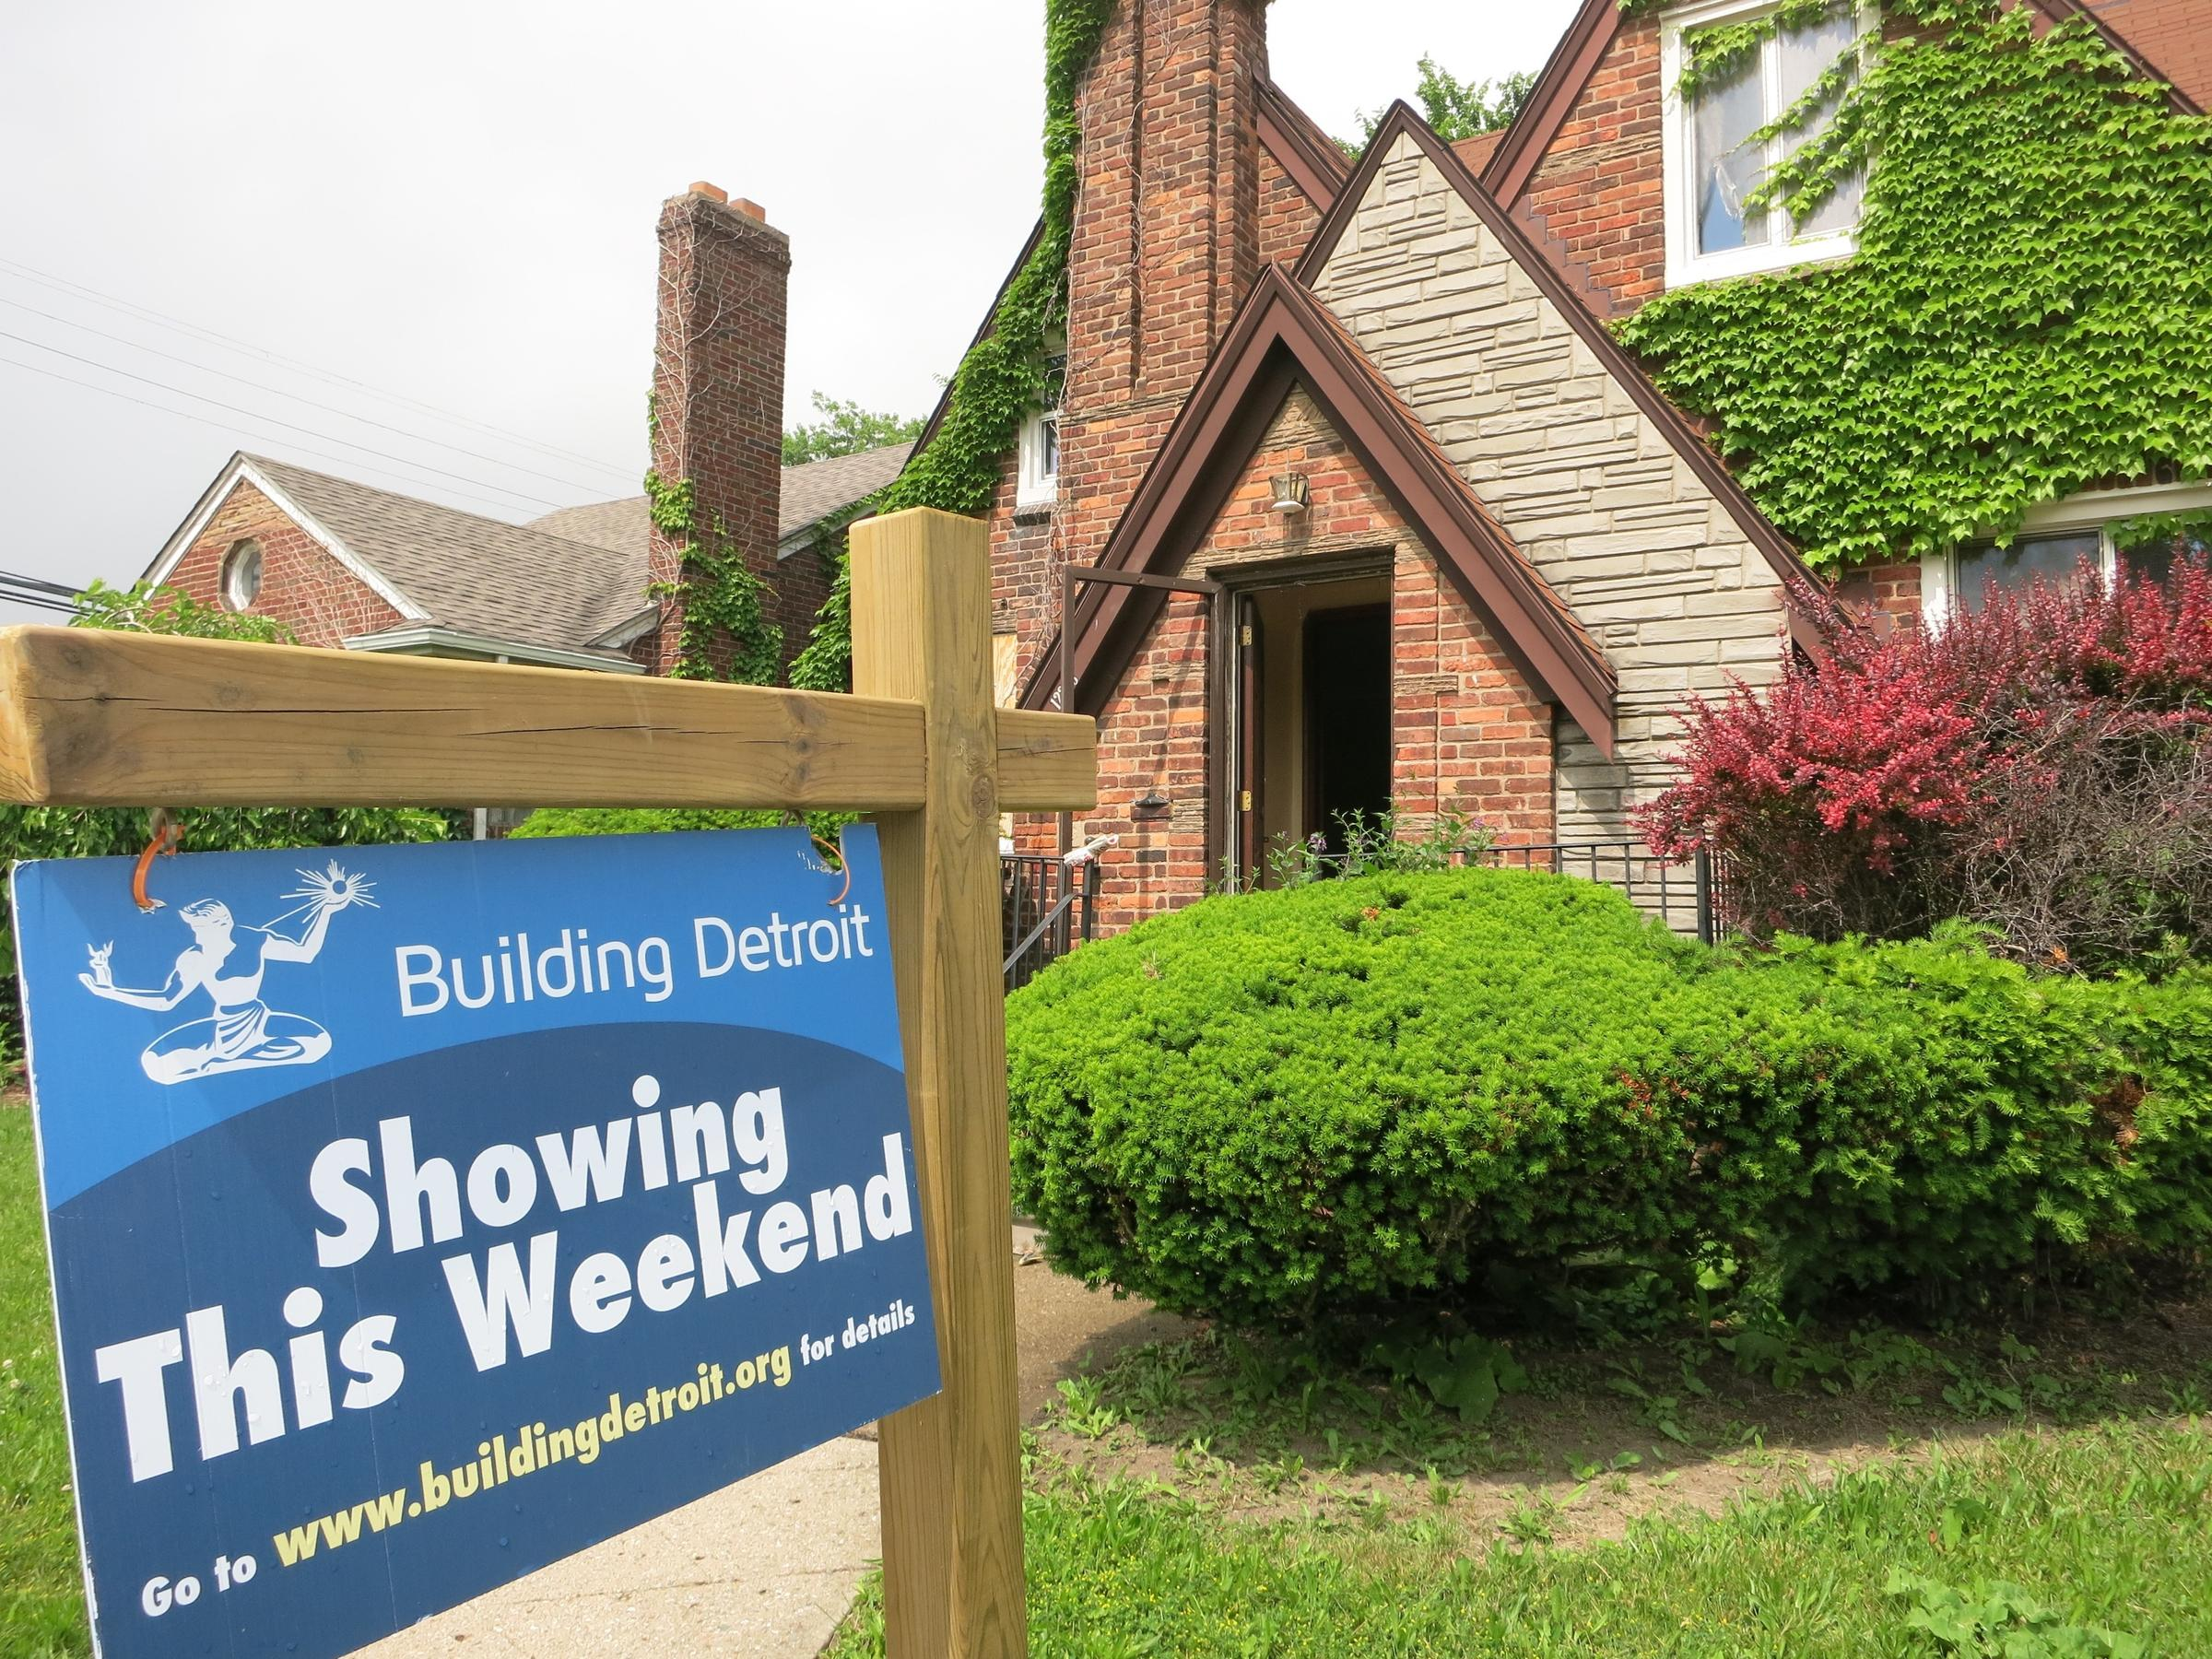 For Sale: Detroit Land Bank Seeks Buyers For Vacant Houses | WOSU Radio